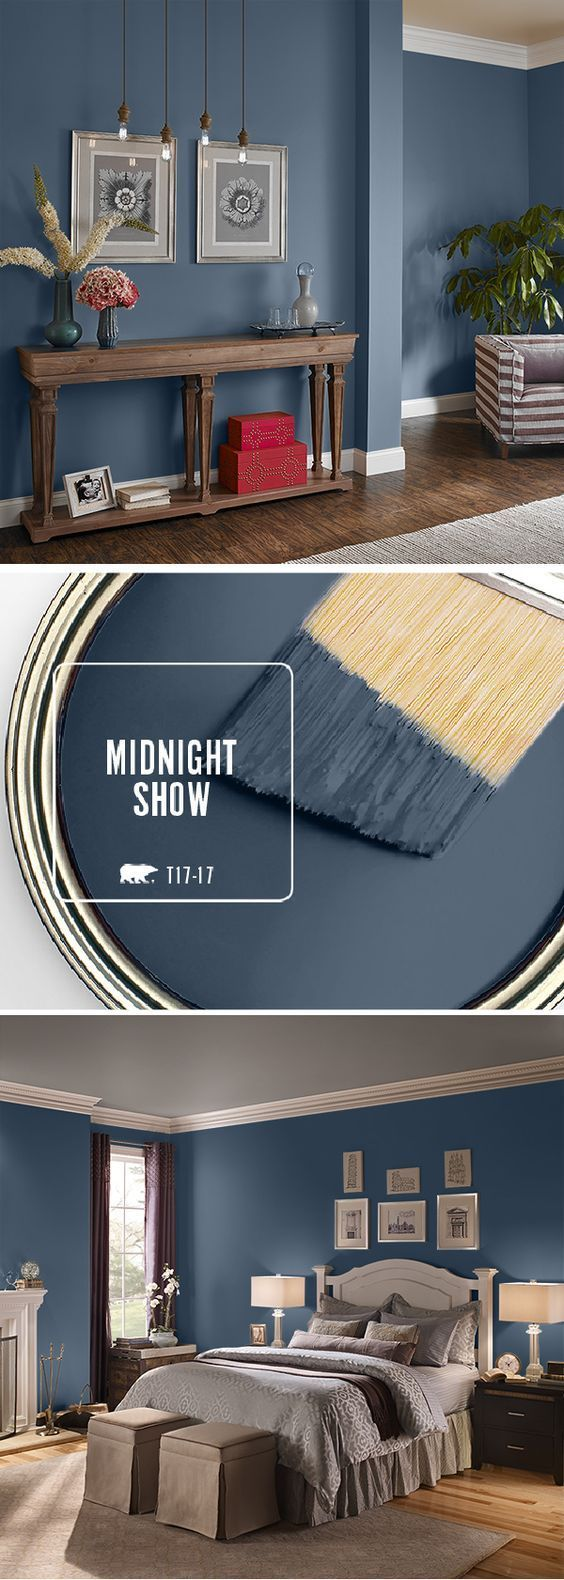 Fall in love with BEHR's color of the month: Midnight Show. This deep, moody